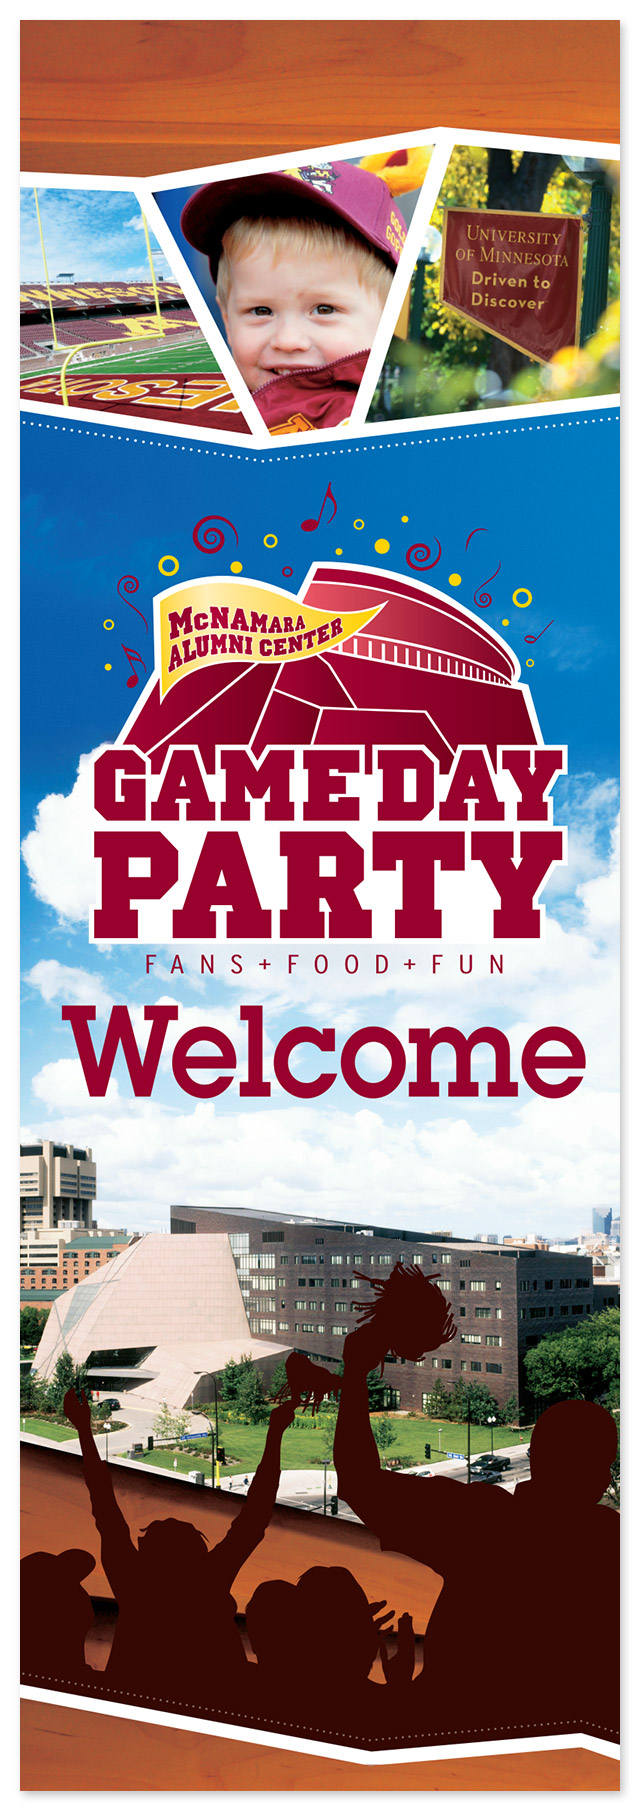 Gameday Welcome Banner